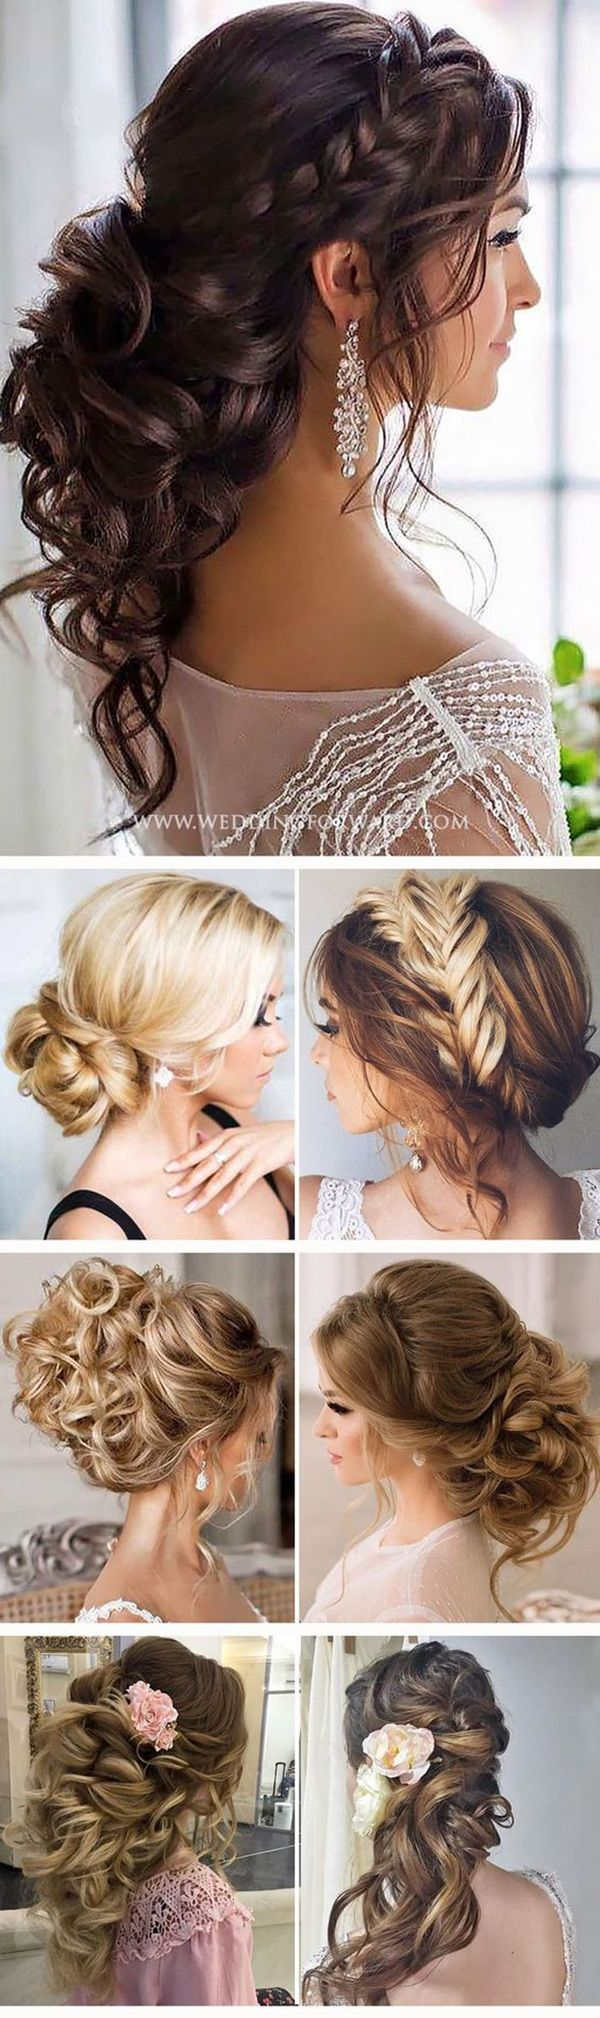 Best 25 prom hair updo ideas on pinterest prom updo wedding top 20 wedding hairstyles youll love for 2017 trends prom hairstyles updos for long haircurly pmusecretfo Choice Image